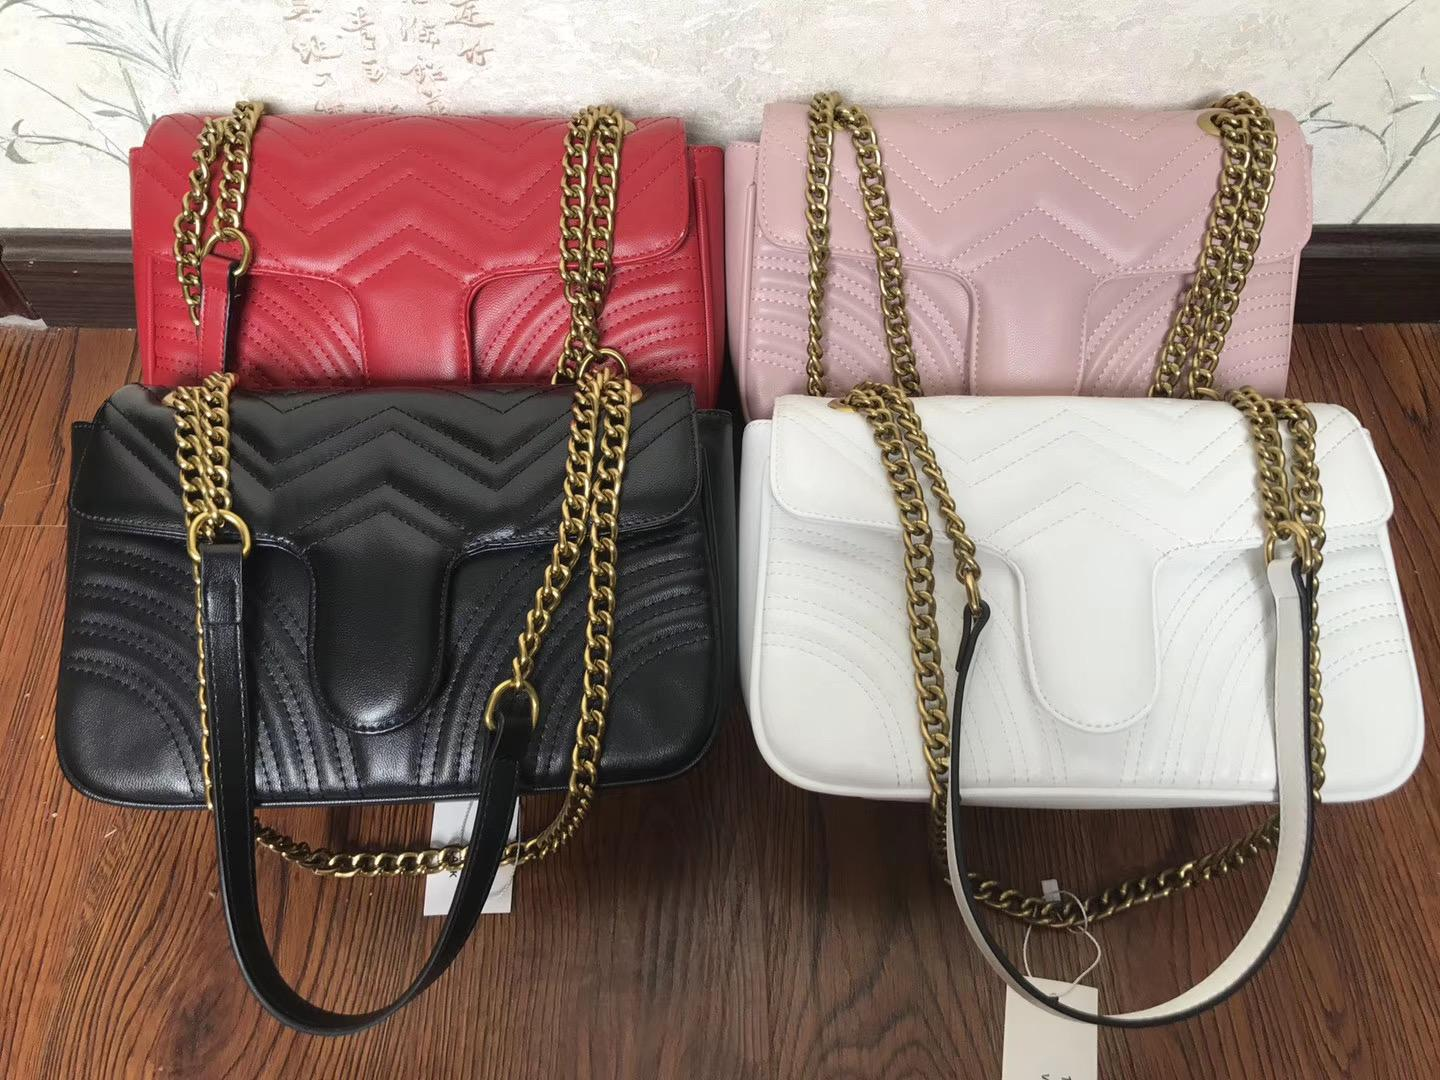 Top Quality 5Colors Famoso Brand Brand Donne Designer Borsa a tracolla in pelle Borsa a catena in pelle Cross Body Pure Color Womens Borsa Crossbody Borsa A244